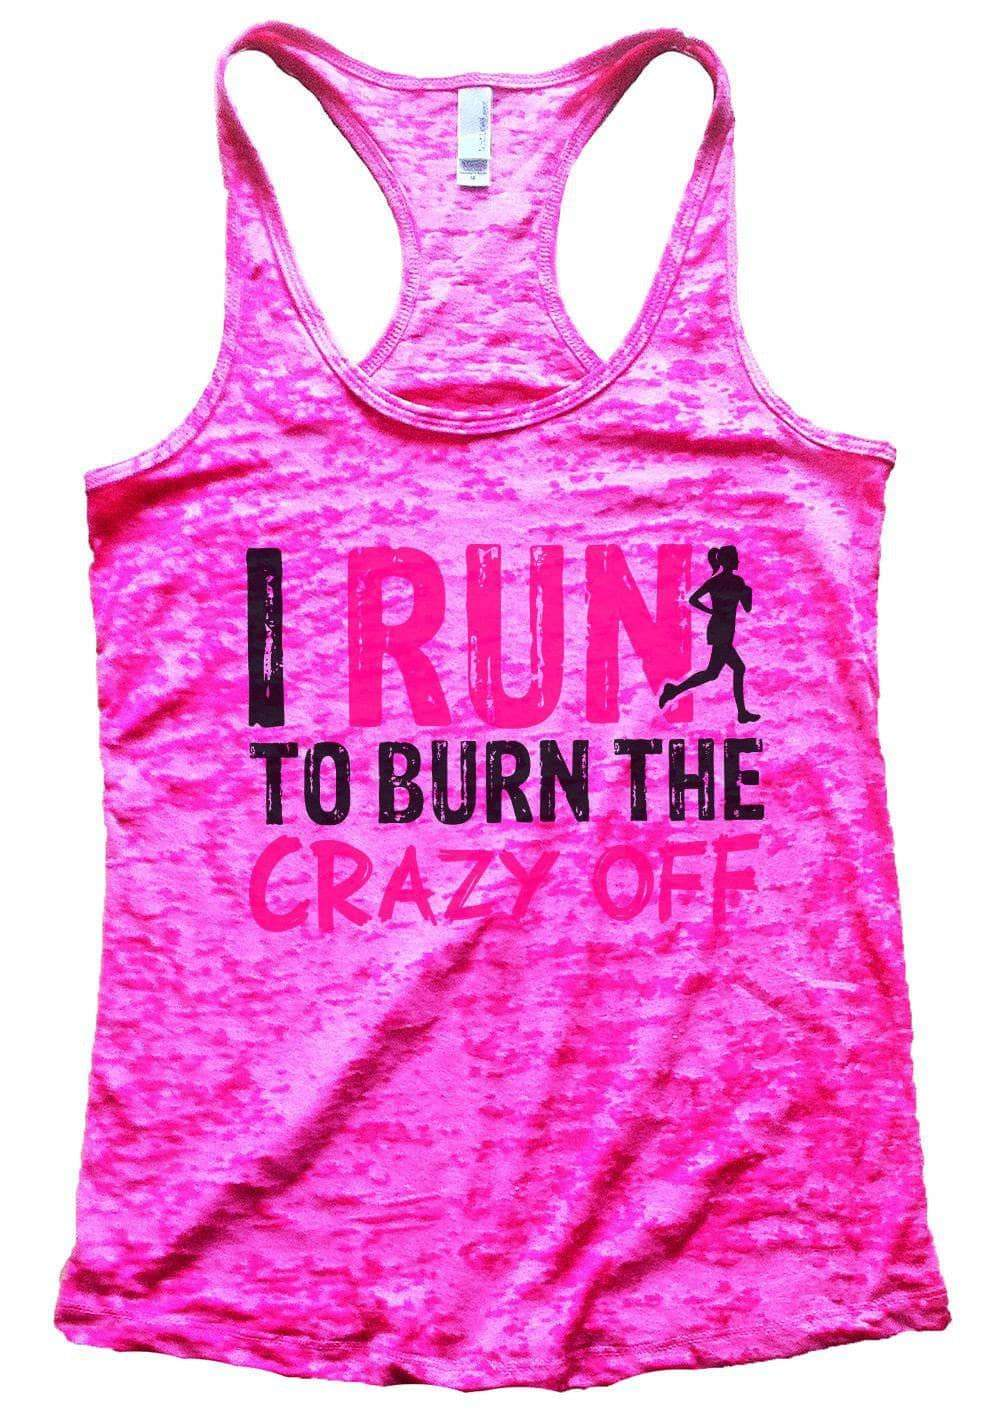 I RUN TO BURN THE CRAZY OFF Burnout Tank Top By Womens Tank Tops Small Womens Tank Tops Shocking Pink